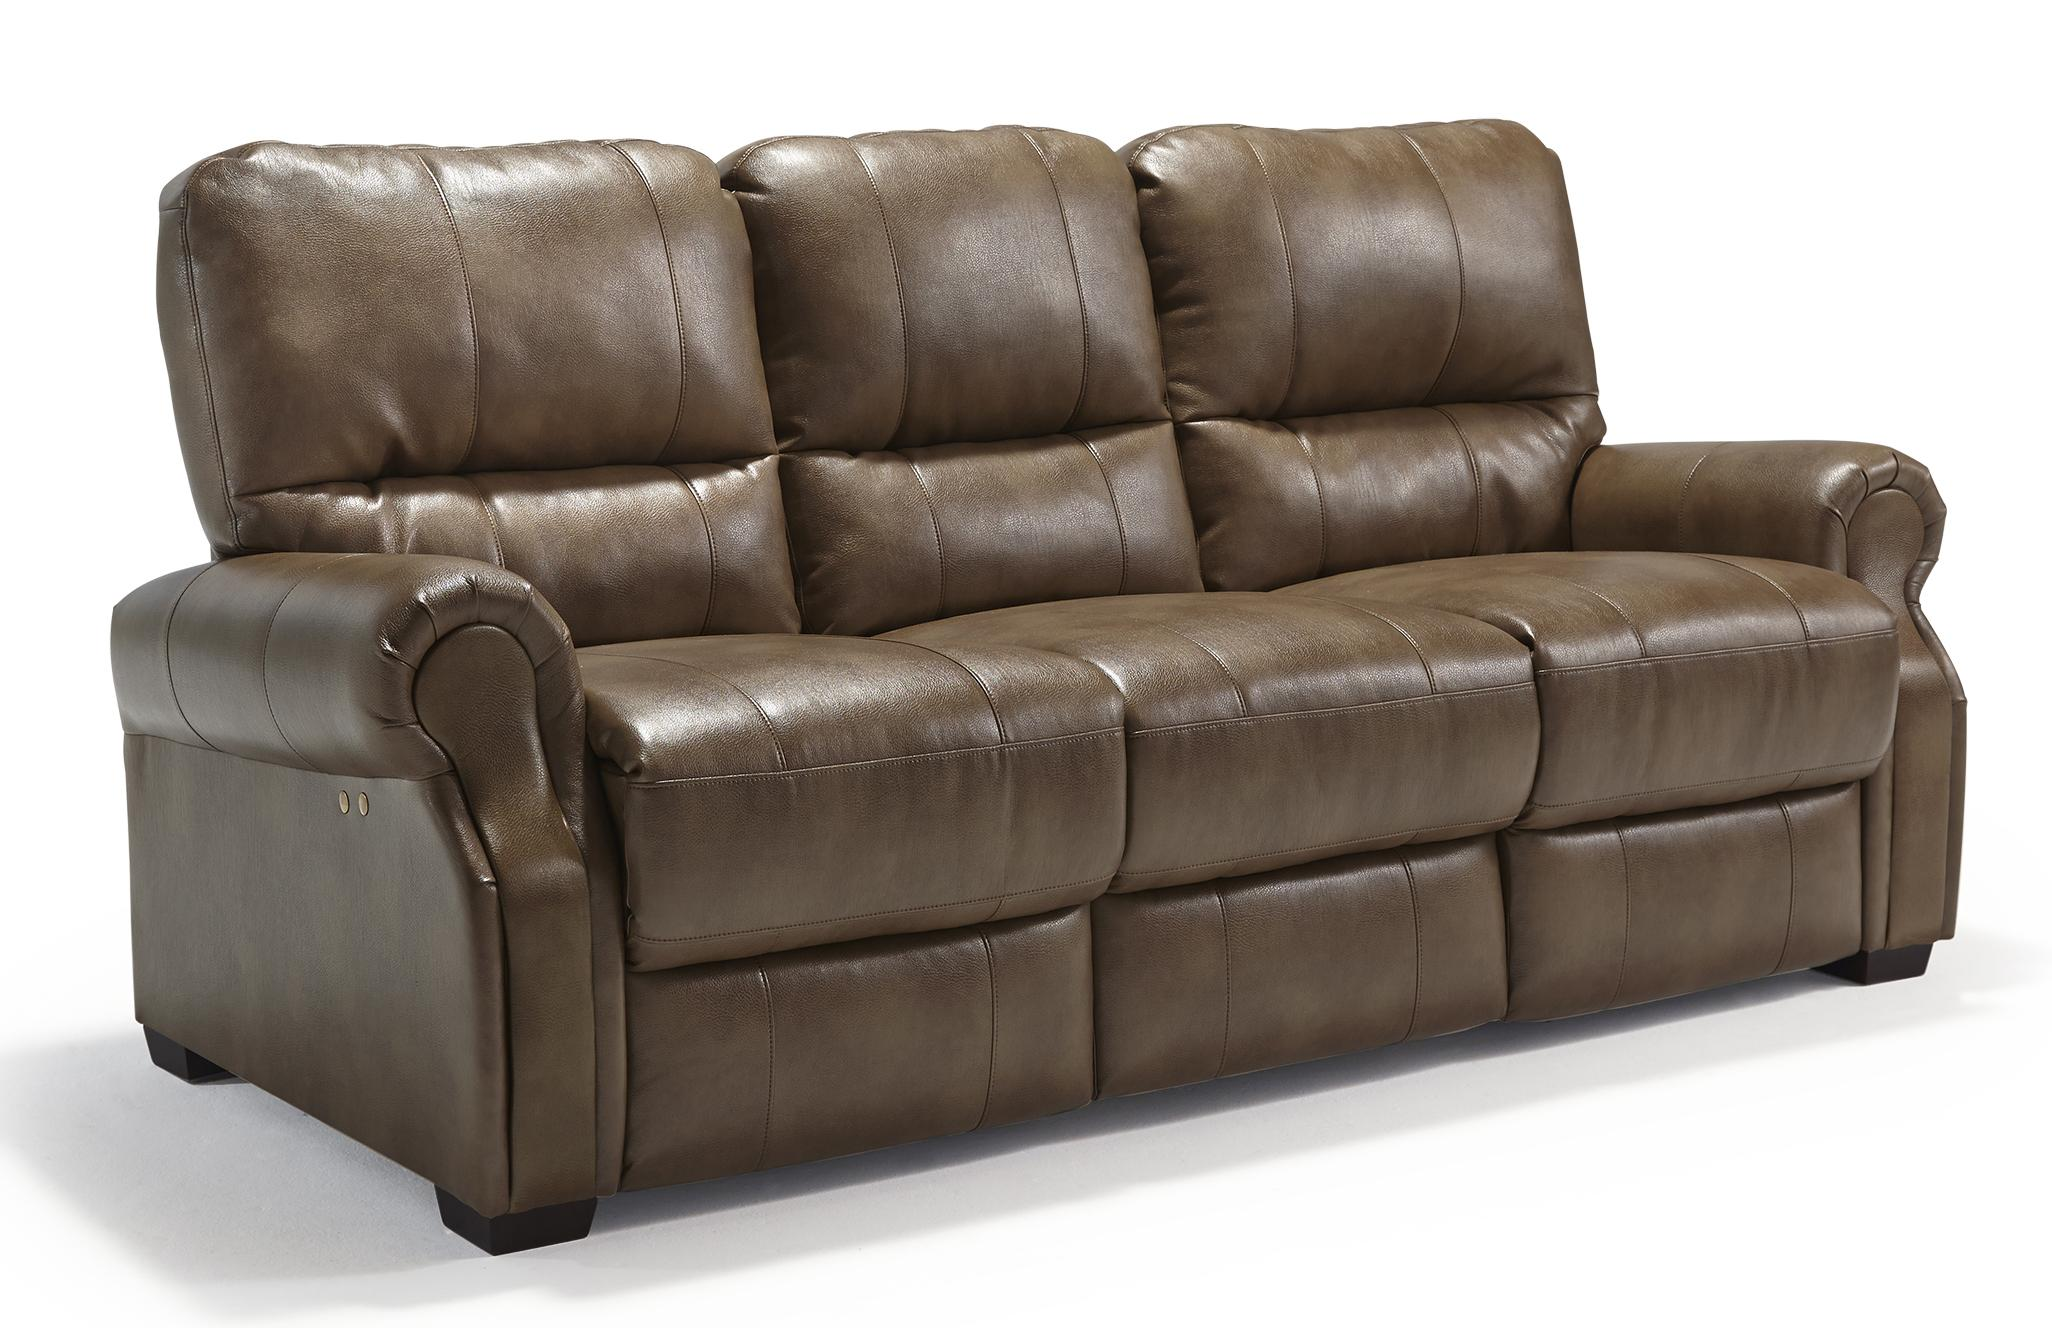 Transitional Power Reclining Sofa with High Legs by Best Home